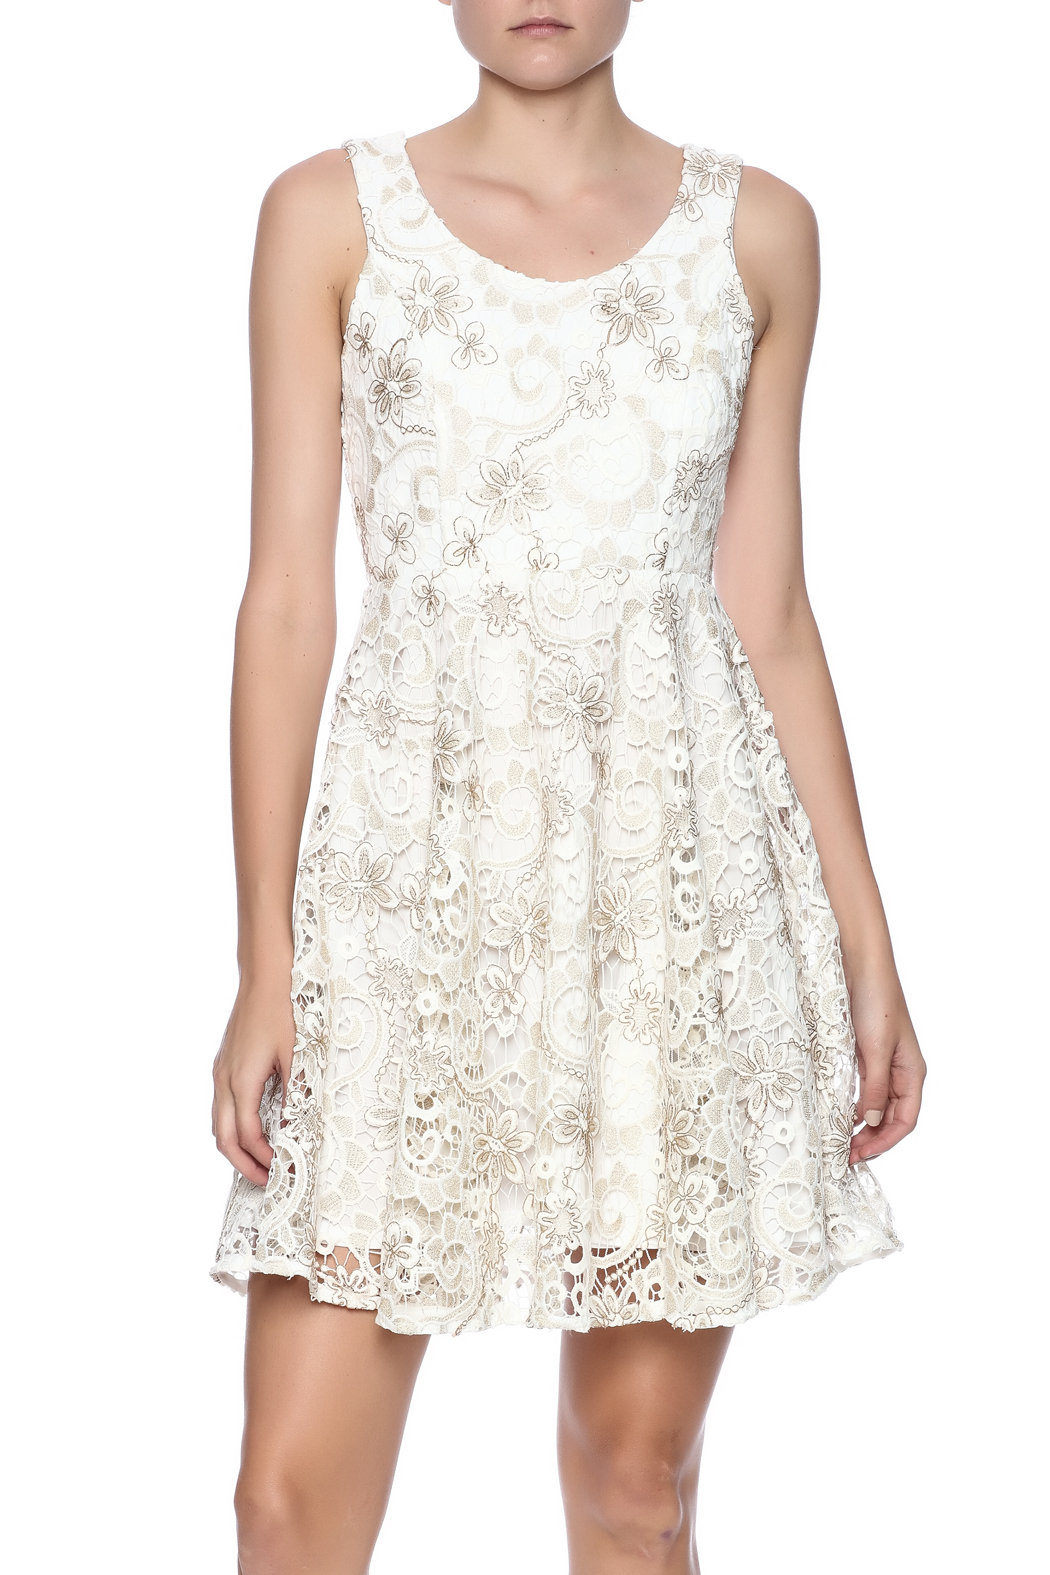 Voom Lace Dress - Main Image